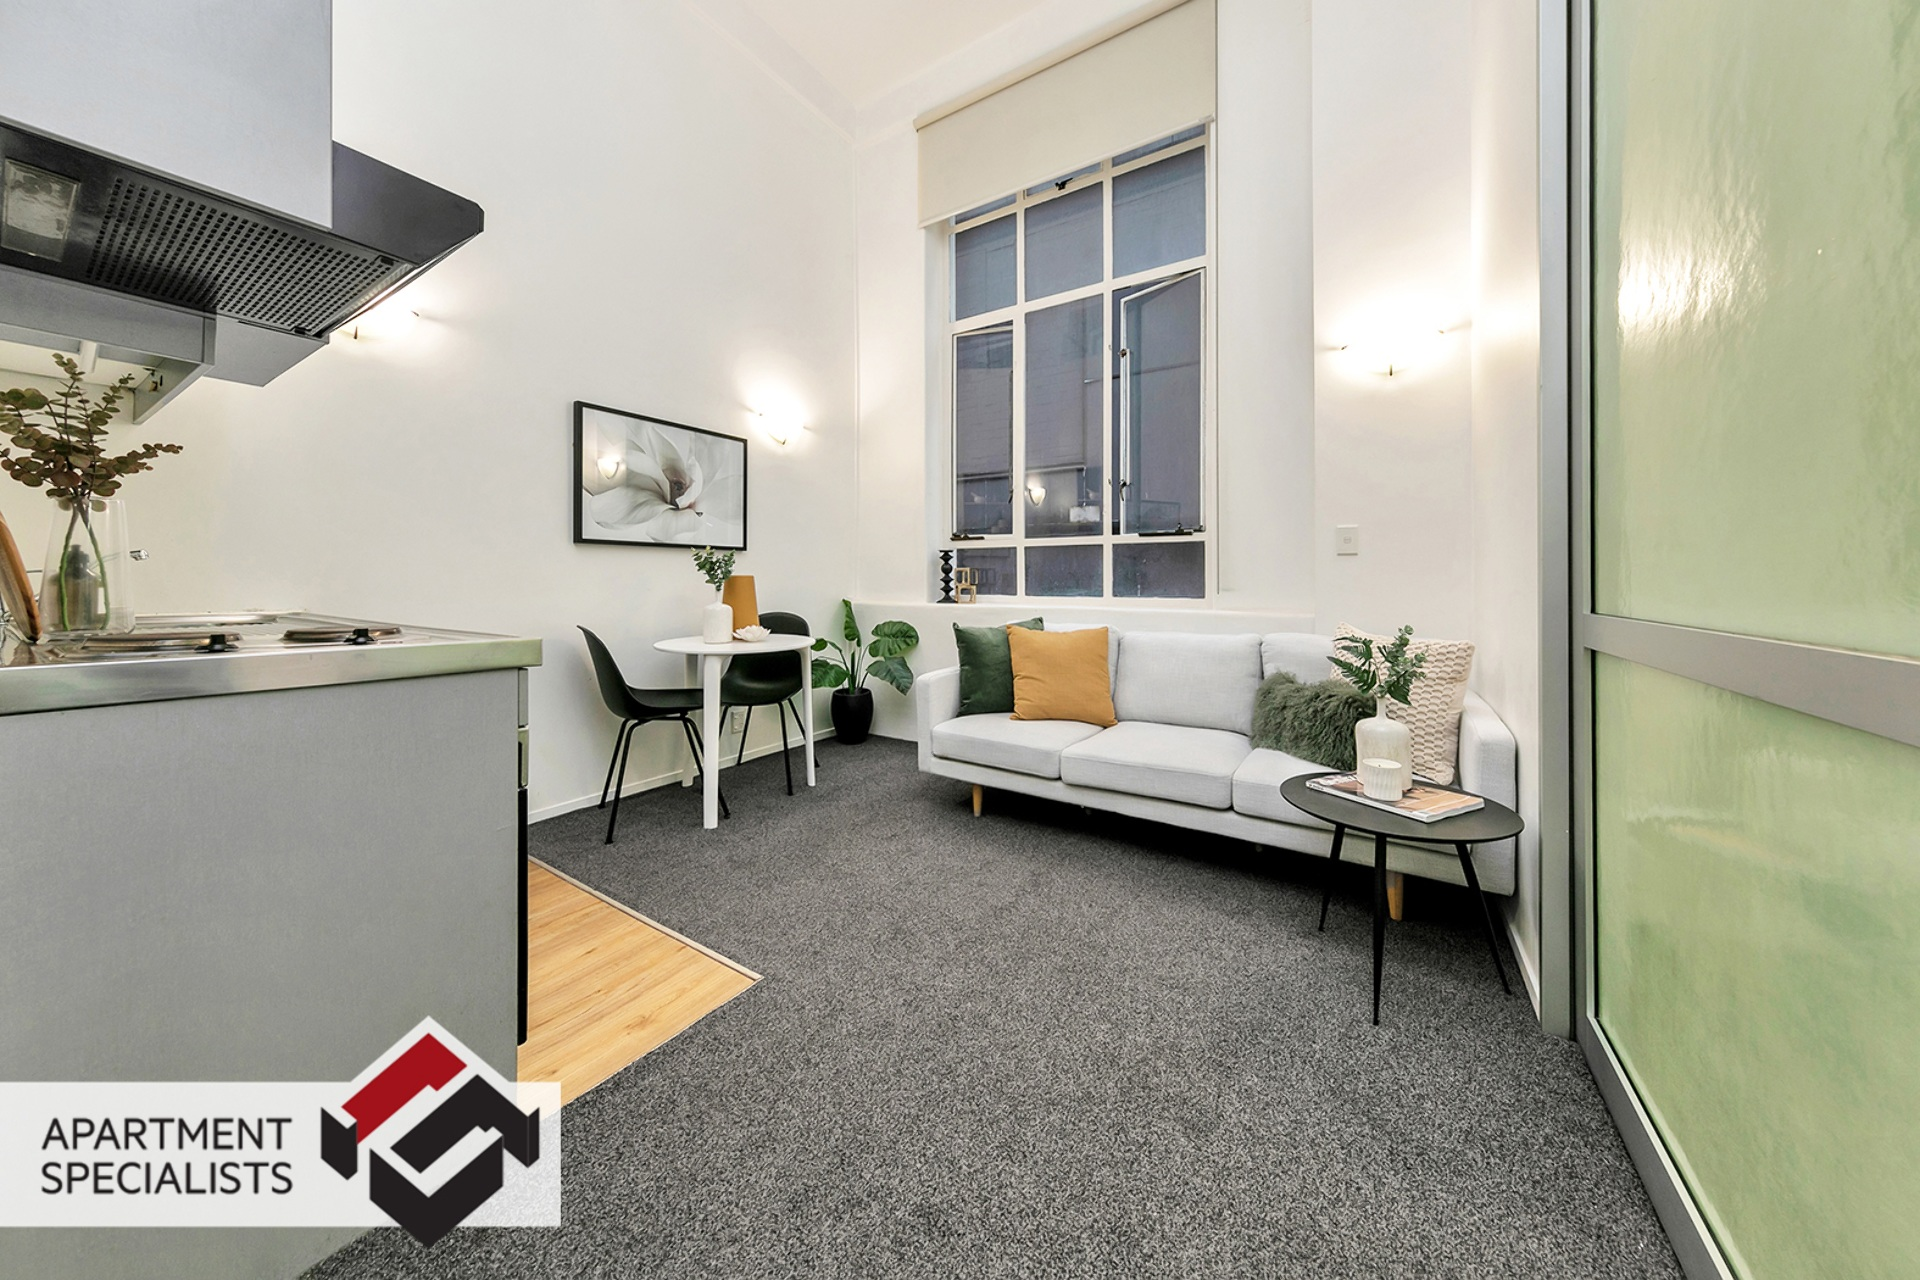 5 | 105 Queen Street, City Centre | Apartment Specialists